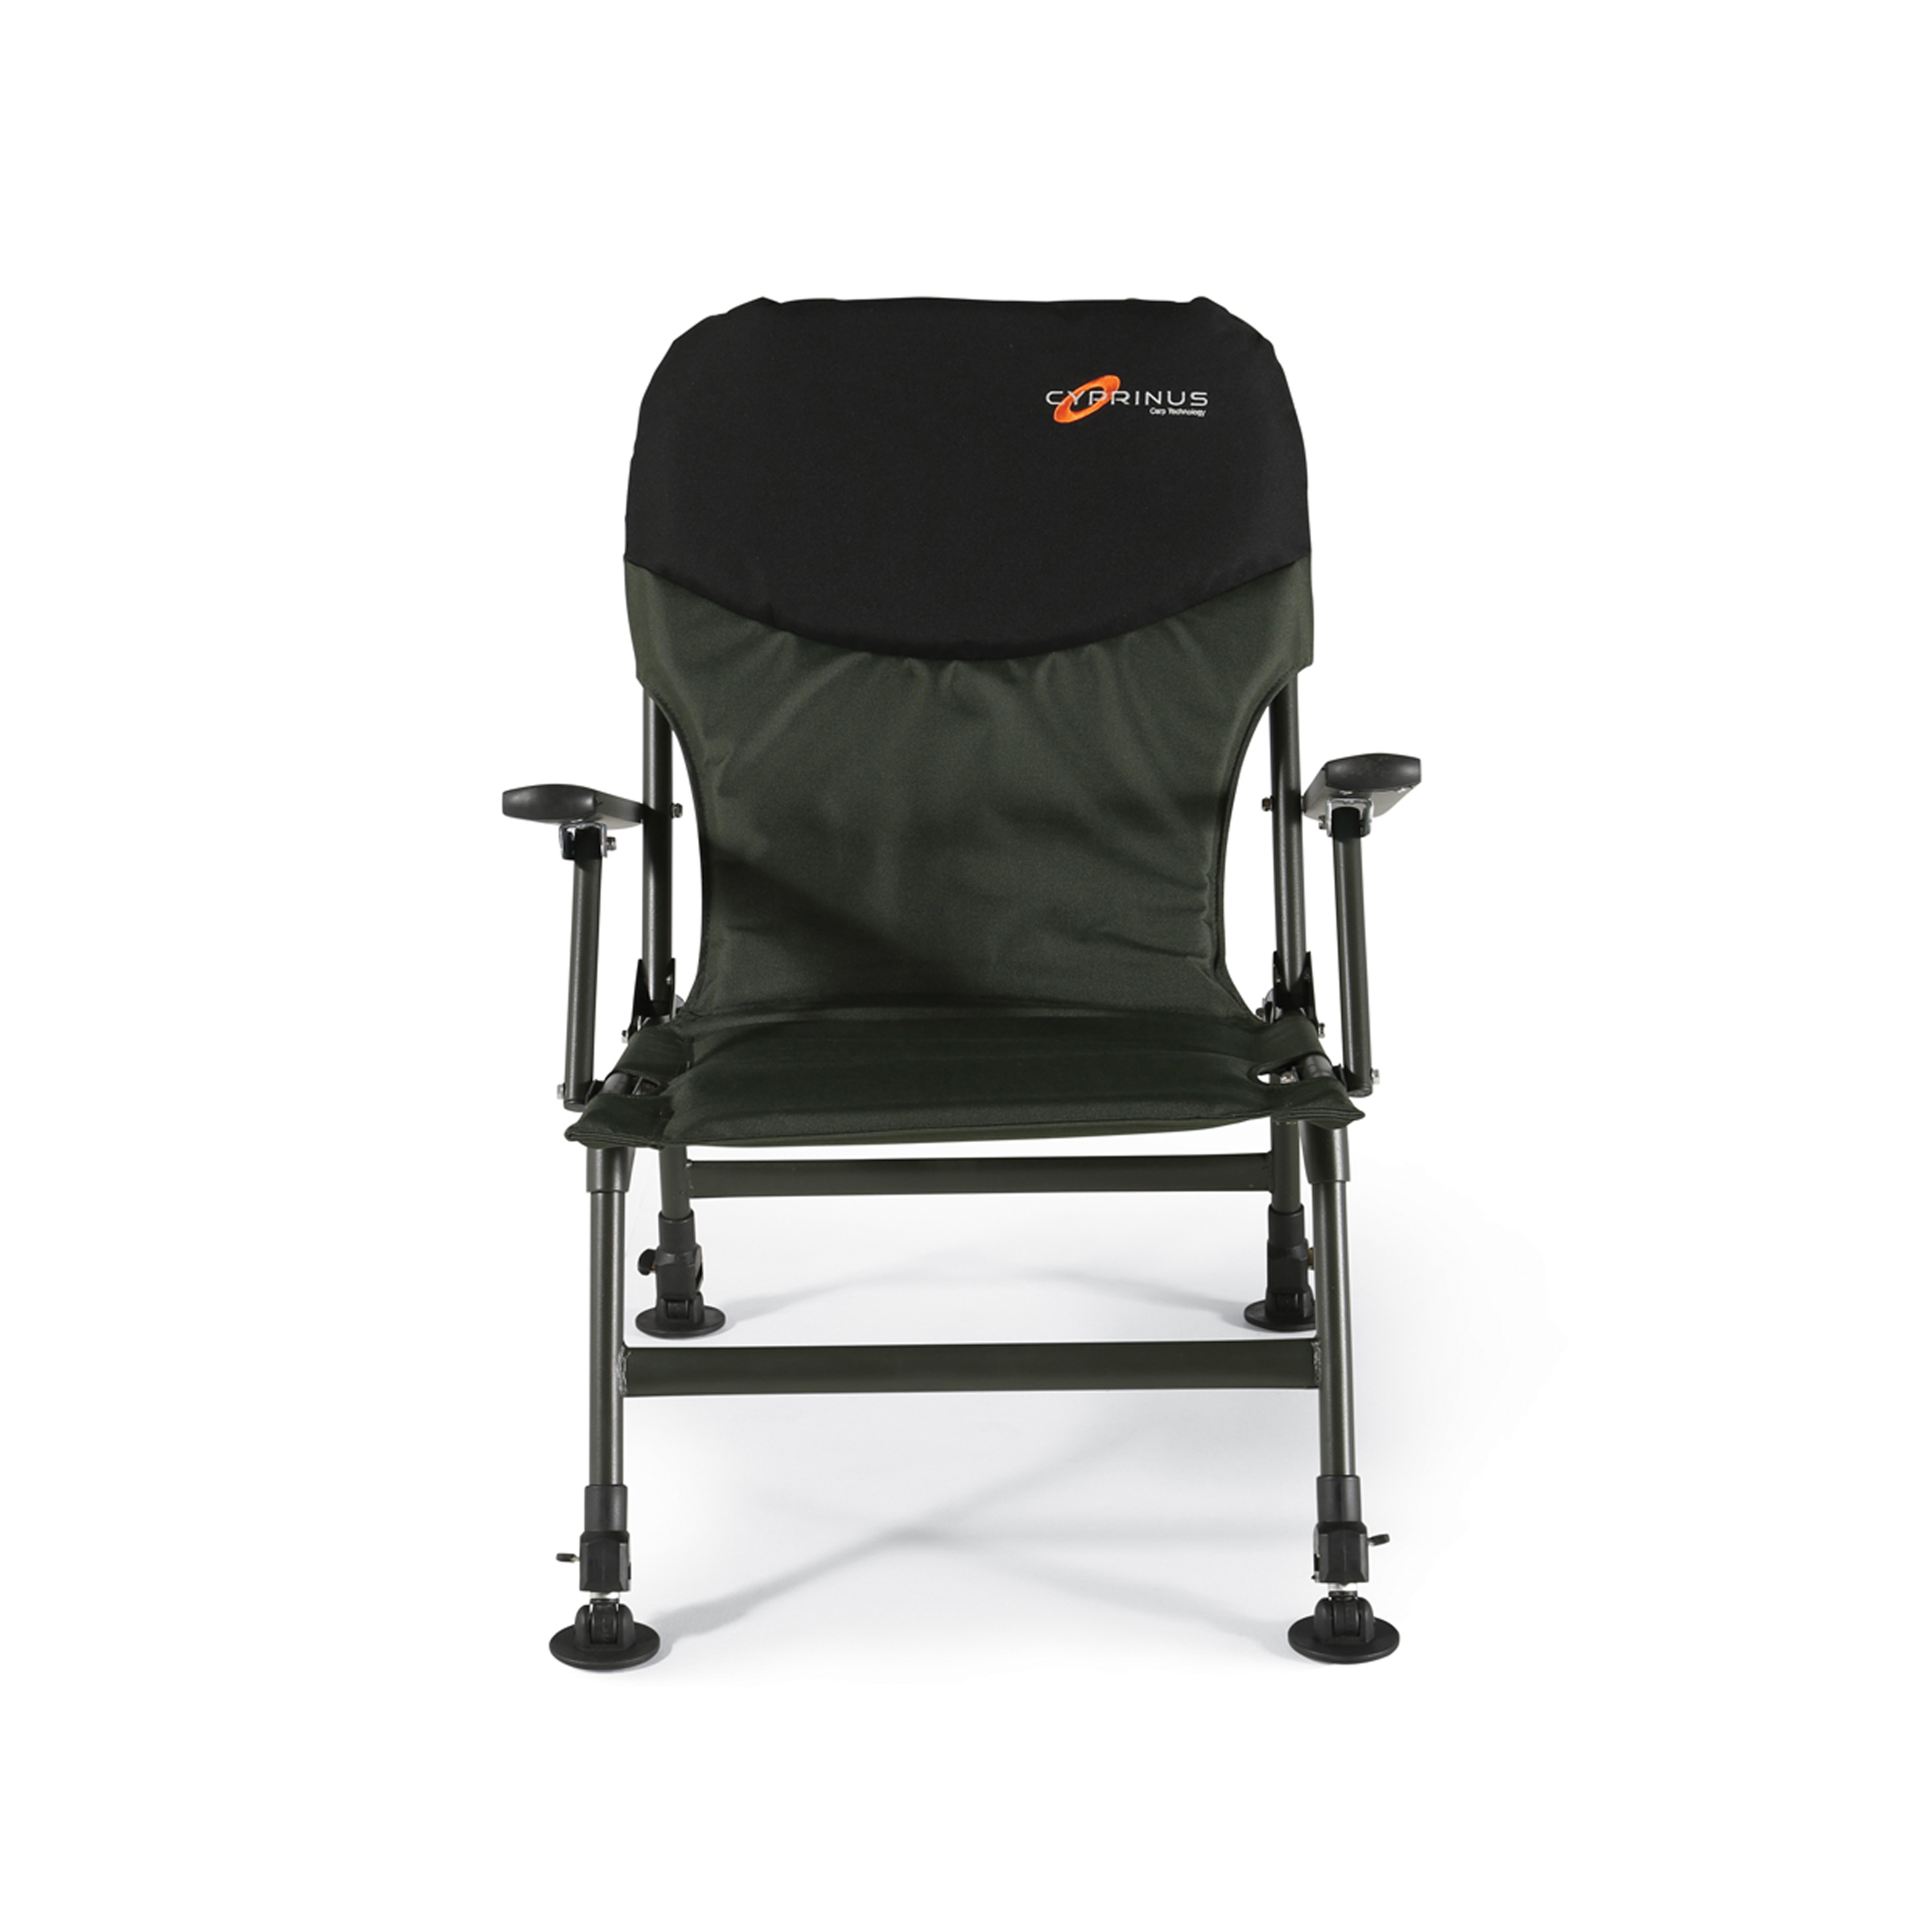 fishing chair lightweight glider with ottoman canada cyprinus folding seat arm rests carp